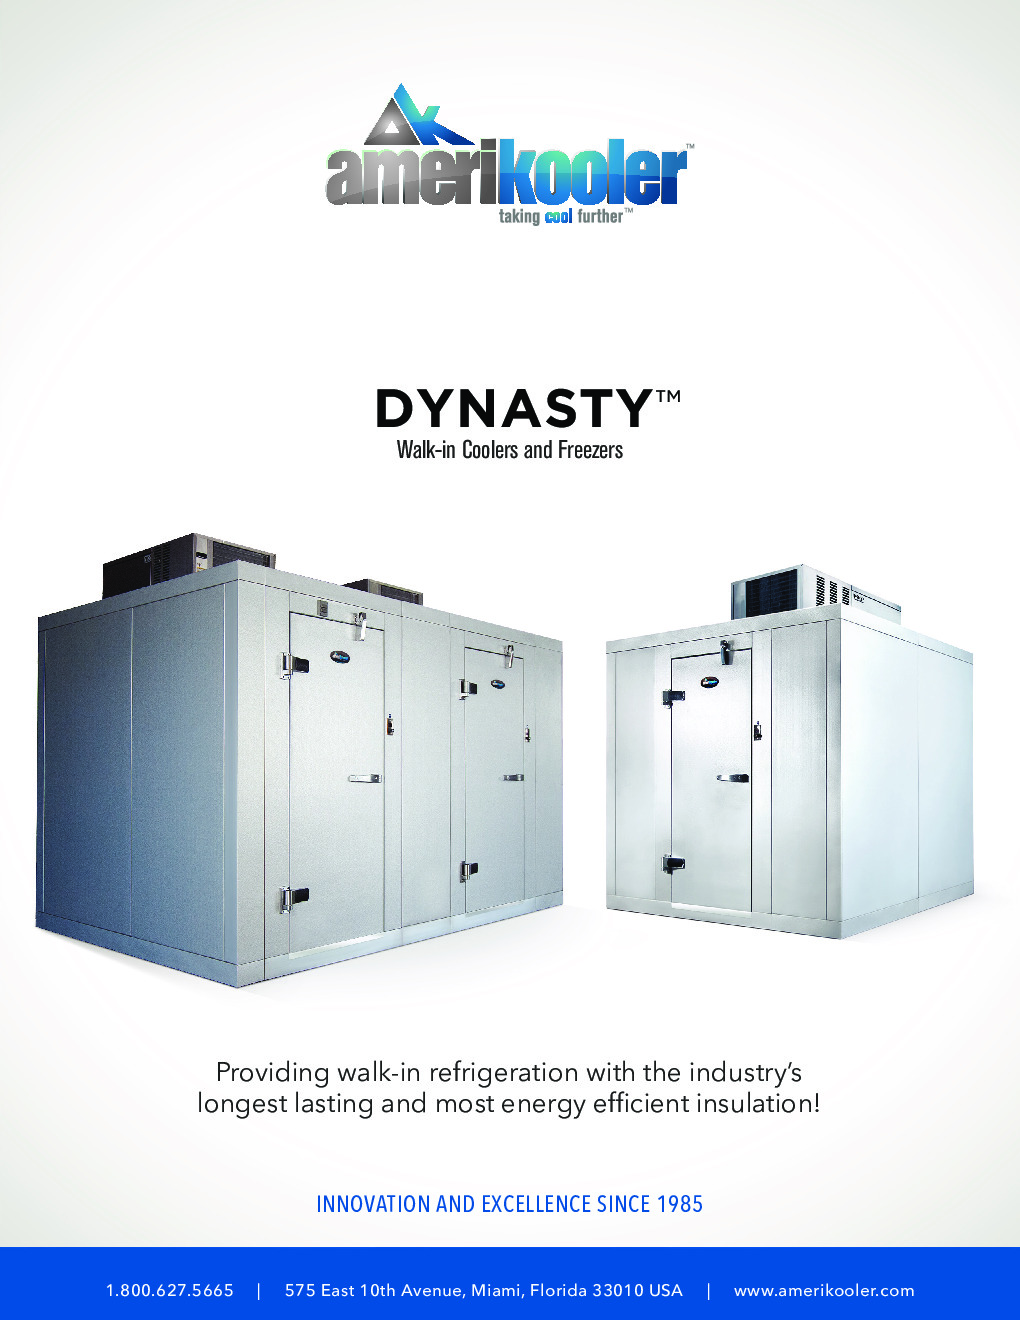 AmeriKooler DW091877N-6/12-SC 9' X 18' Walk-In Cooler, 12' L Cooler without Floor and 6' L Freezer, Self Contained